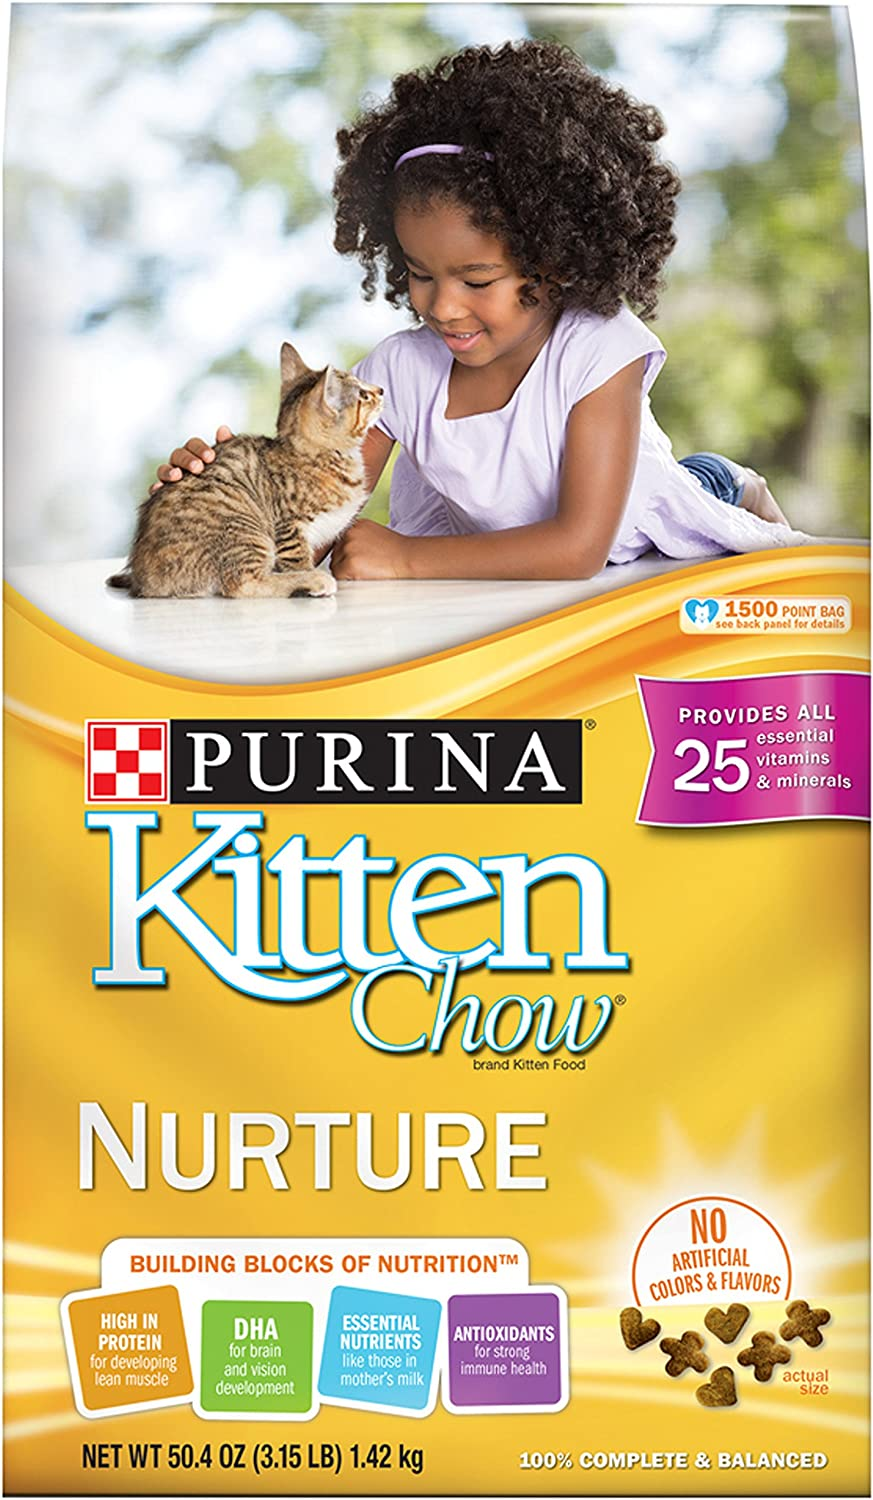 Amazon Com Purina Kitten Chow Dry Kitten Food Nurture 3 15 Pound Bag Pack Of 6 Dry Pet Food Pet Supplies